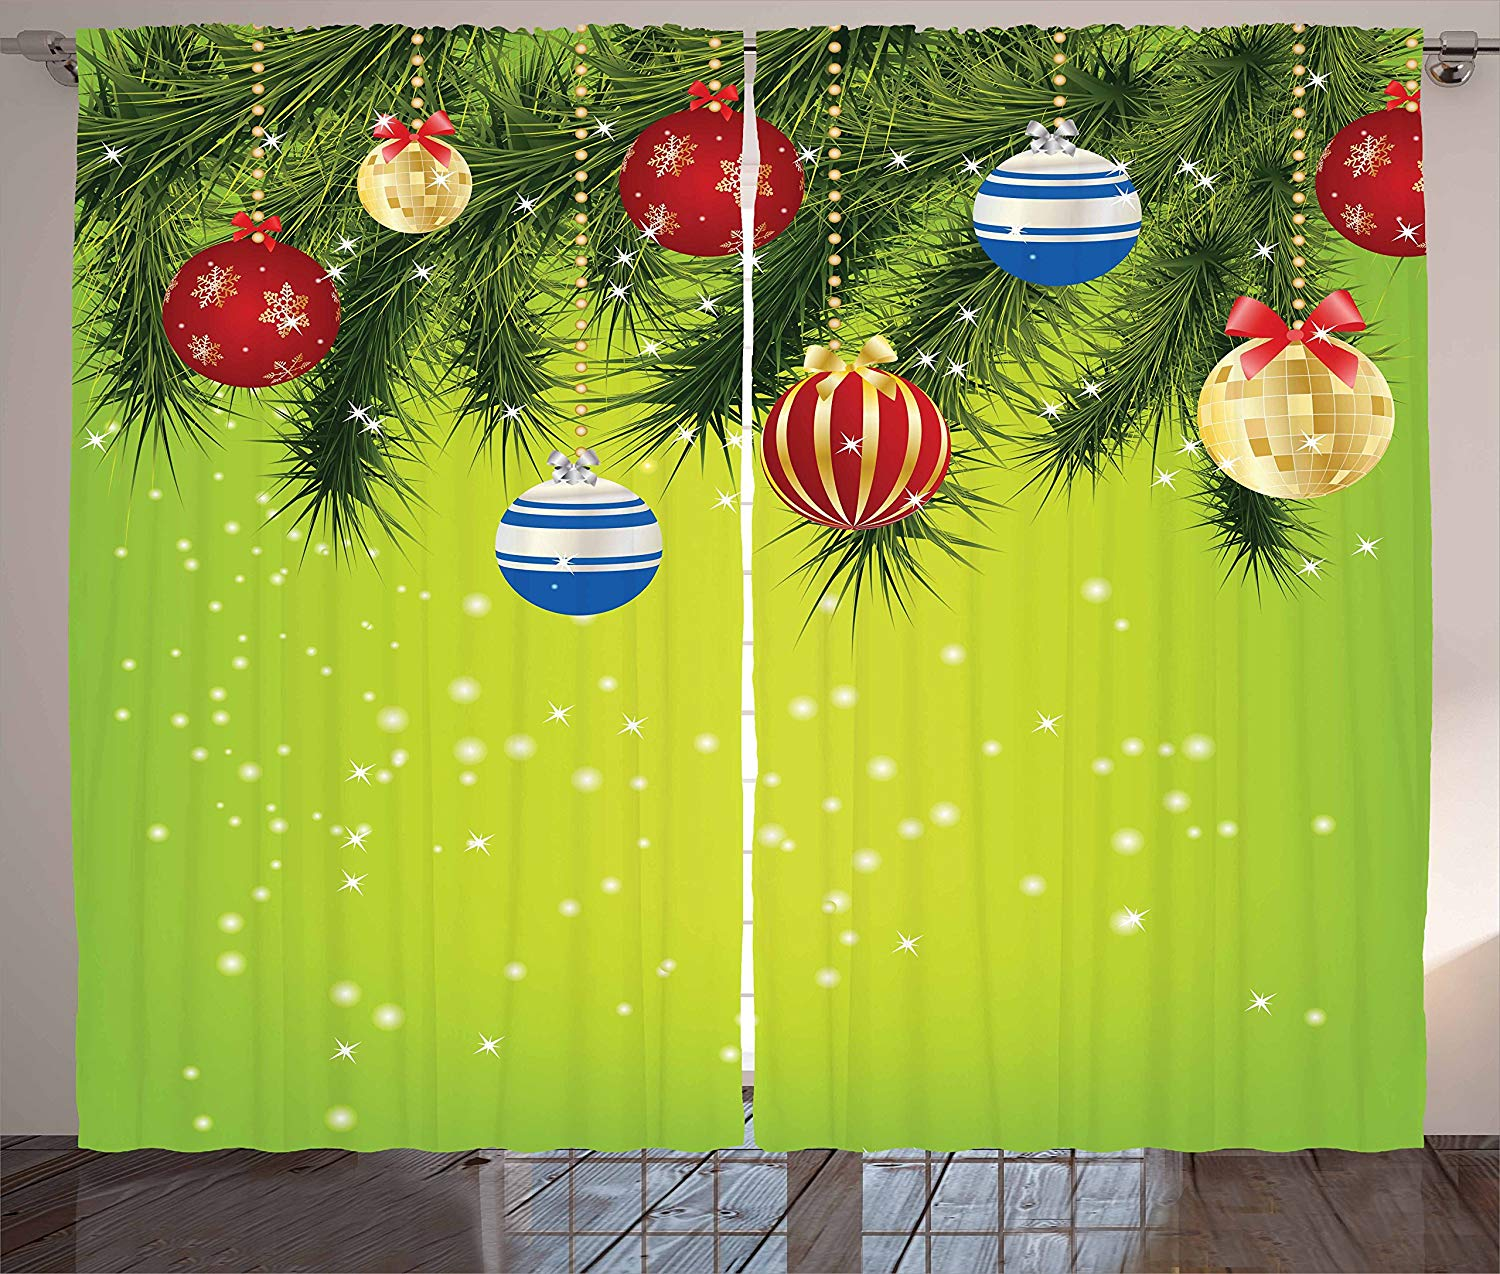 Christmas Kitchen Curtains Hanging Ornaments Branches New Year Celebration Party Magical Xmas Environment Window Decor Panel